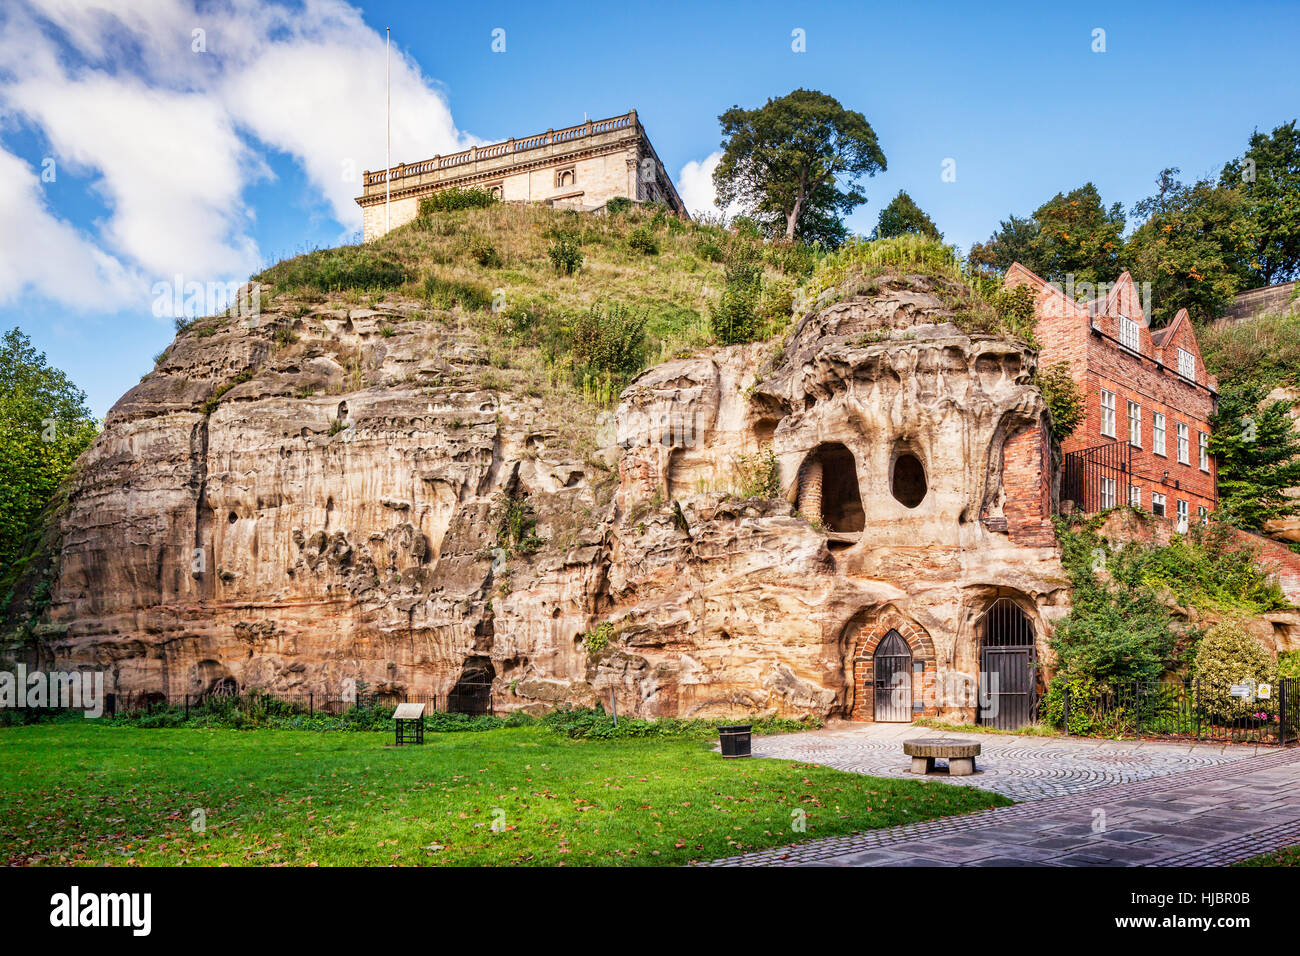 Nottingham Caves, England, UK - Stock Image